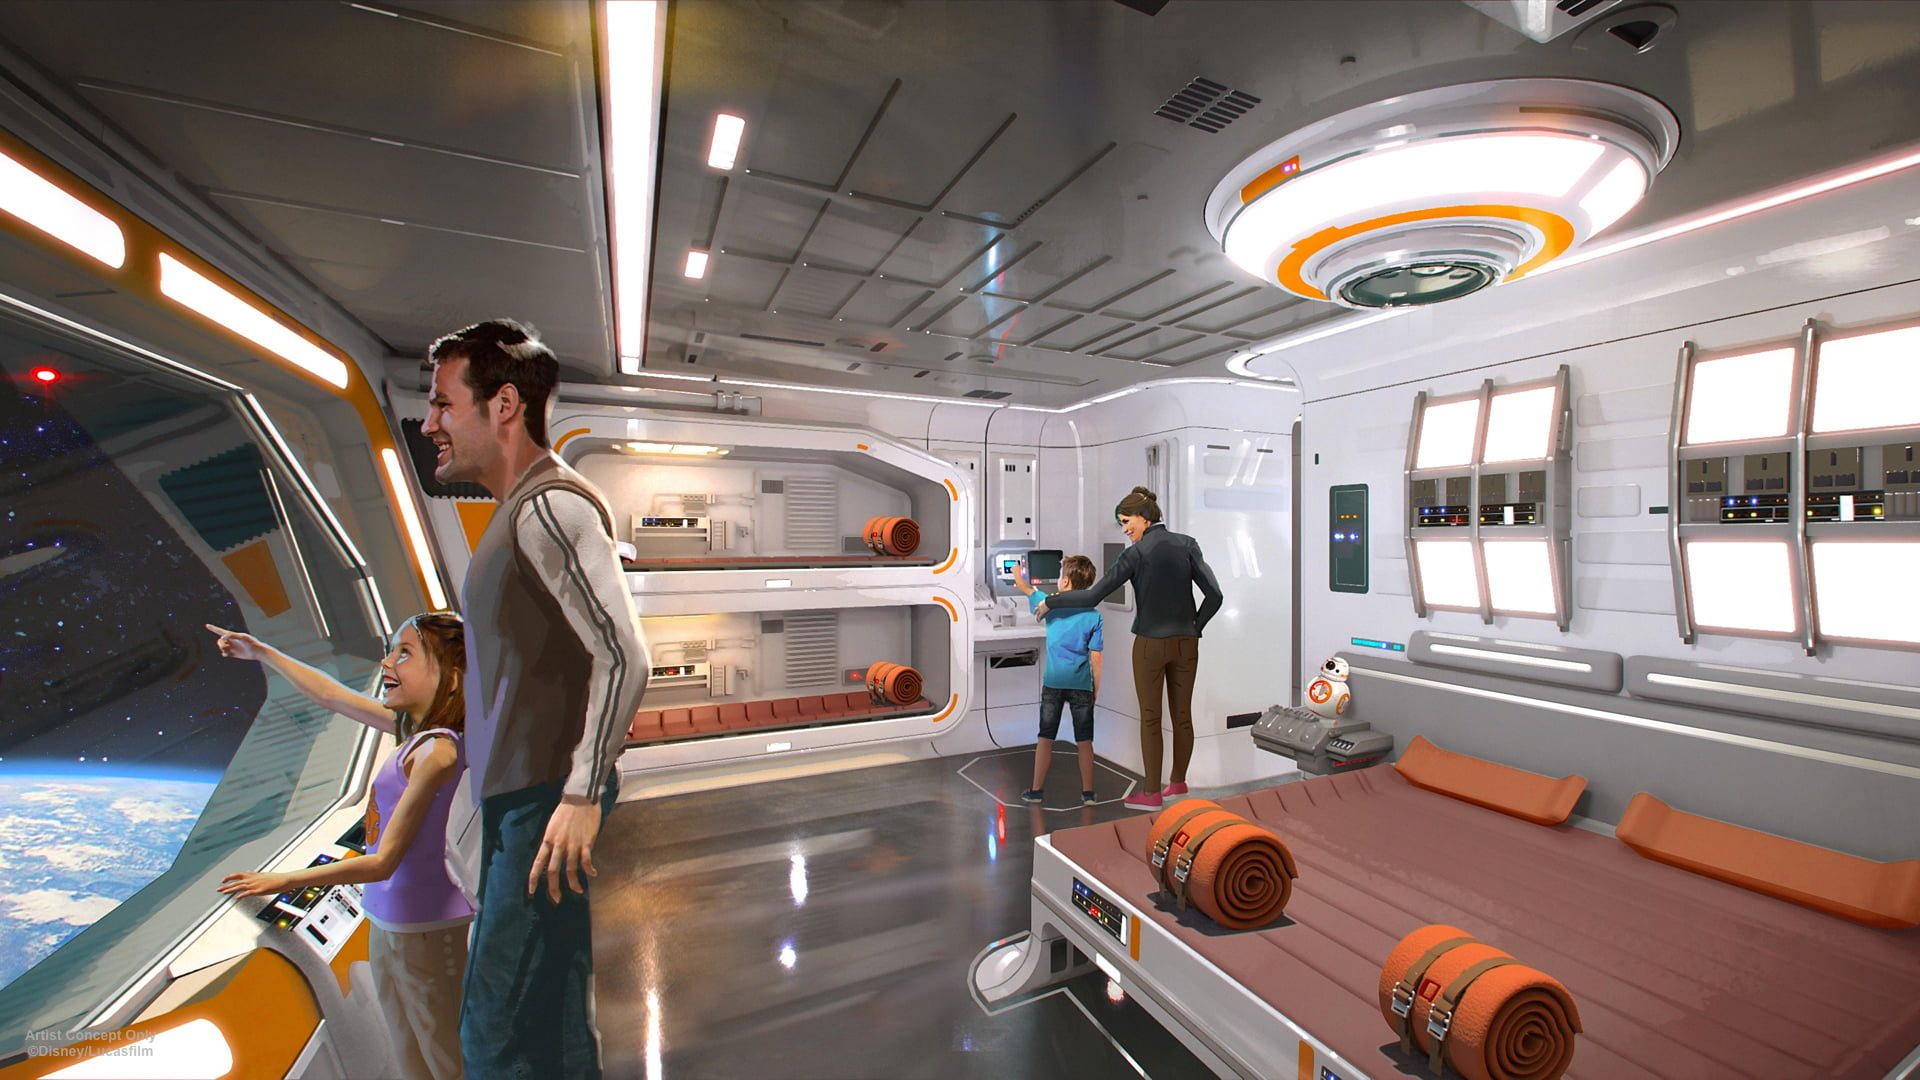 Star Wars Hotel In Disney World Tourist Blog Tiket Disneyland Hongkong Open Date A Resort Has Been Announced For Walt Which Will Offer An Immersive Visit That Further Enhances What Guests Experience